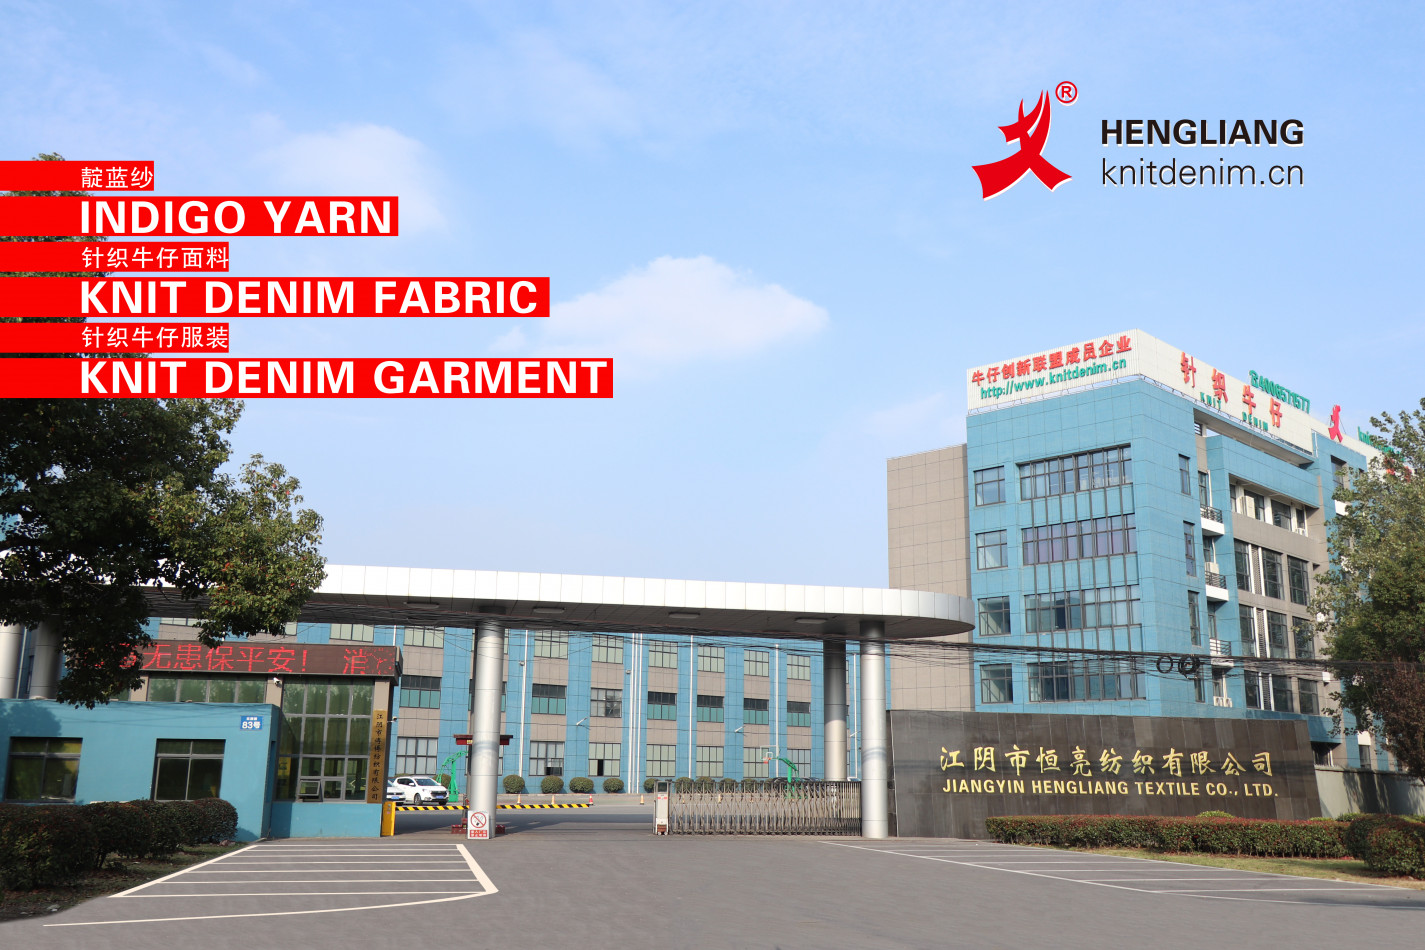 Jiangyin Hengliang Textile Co., Ltd.